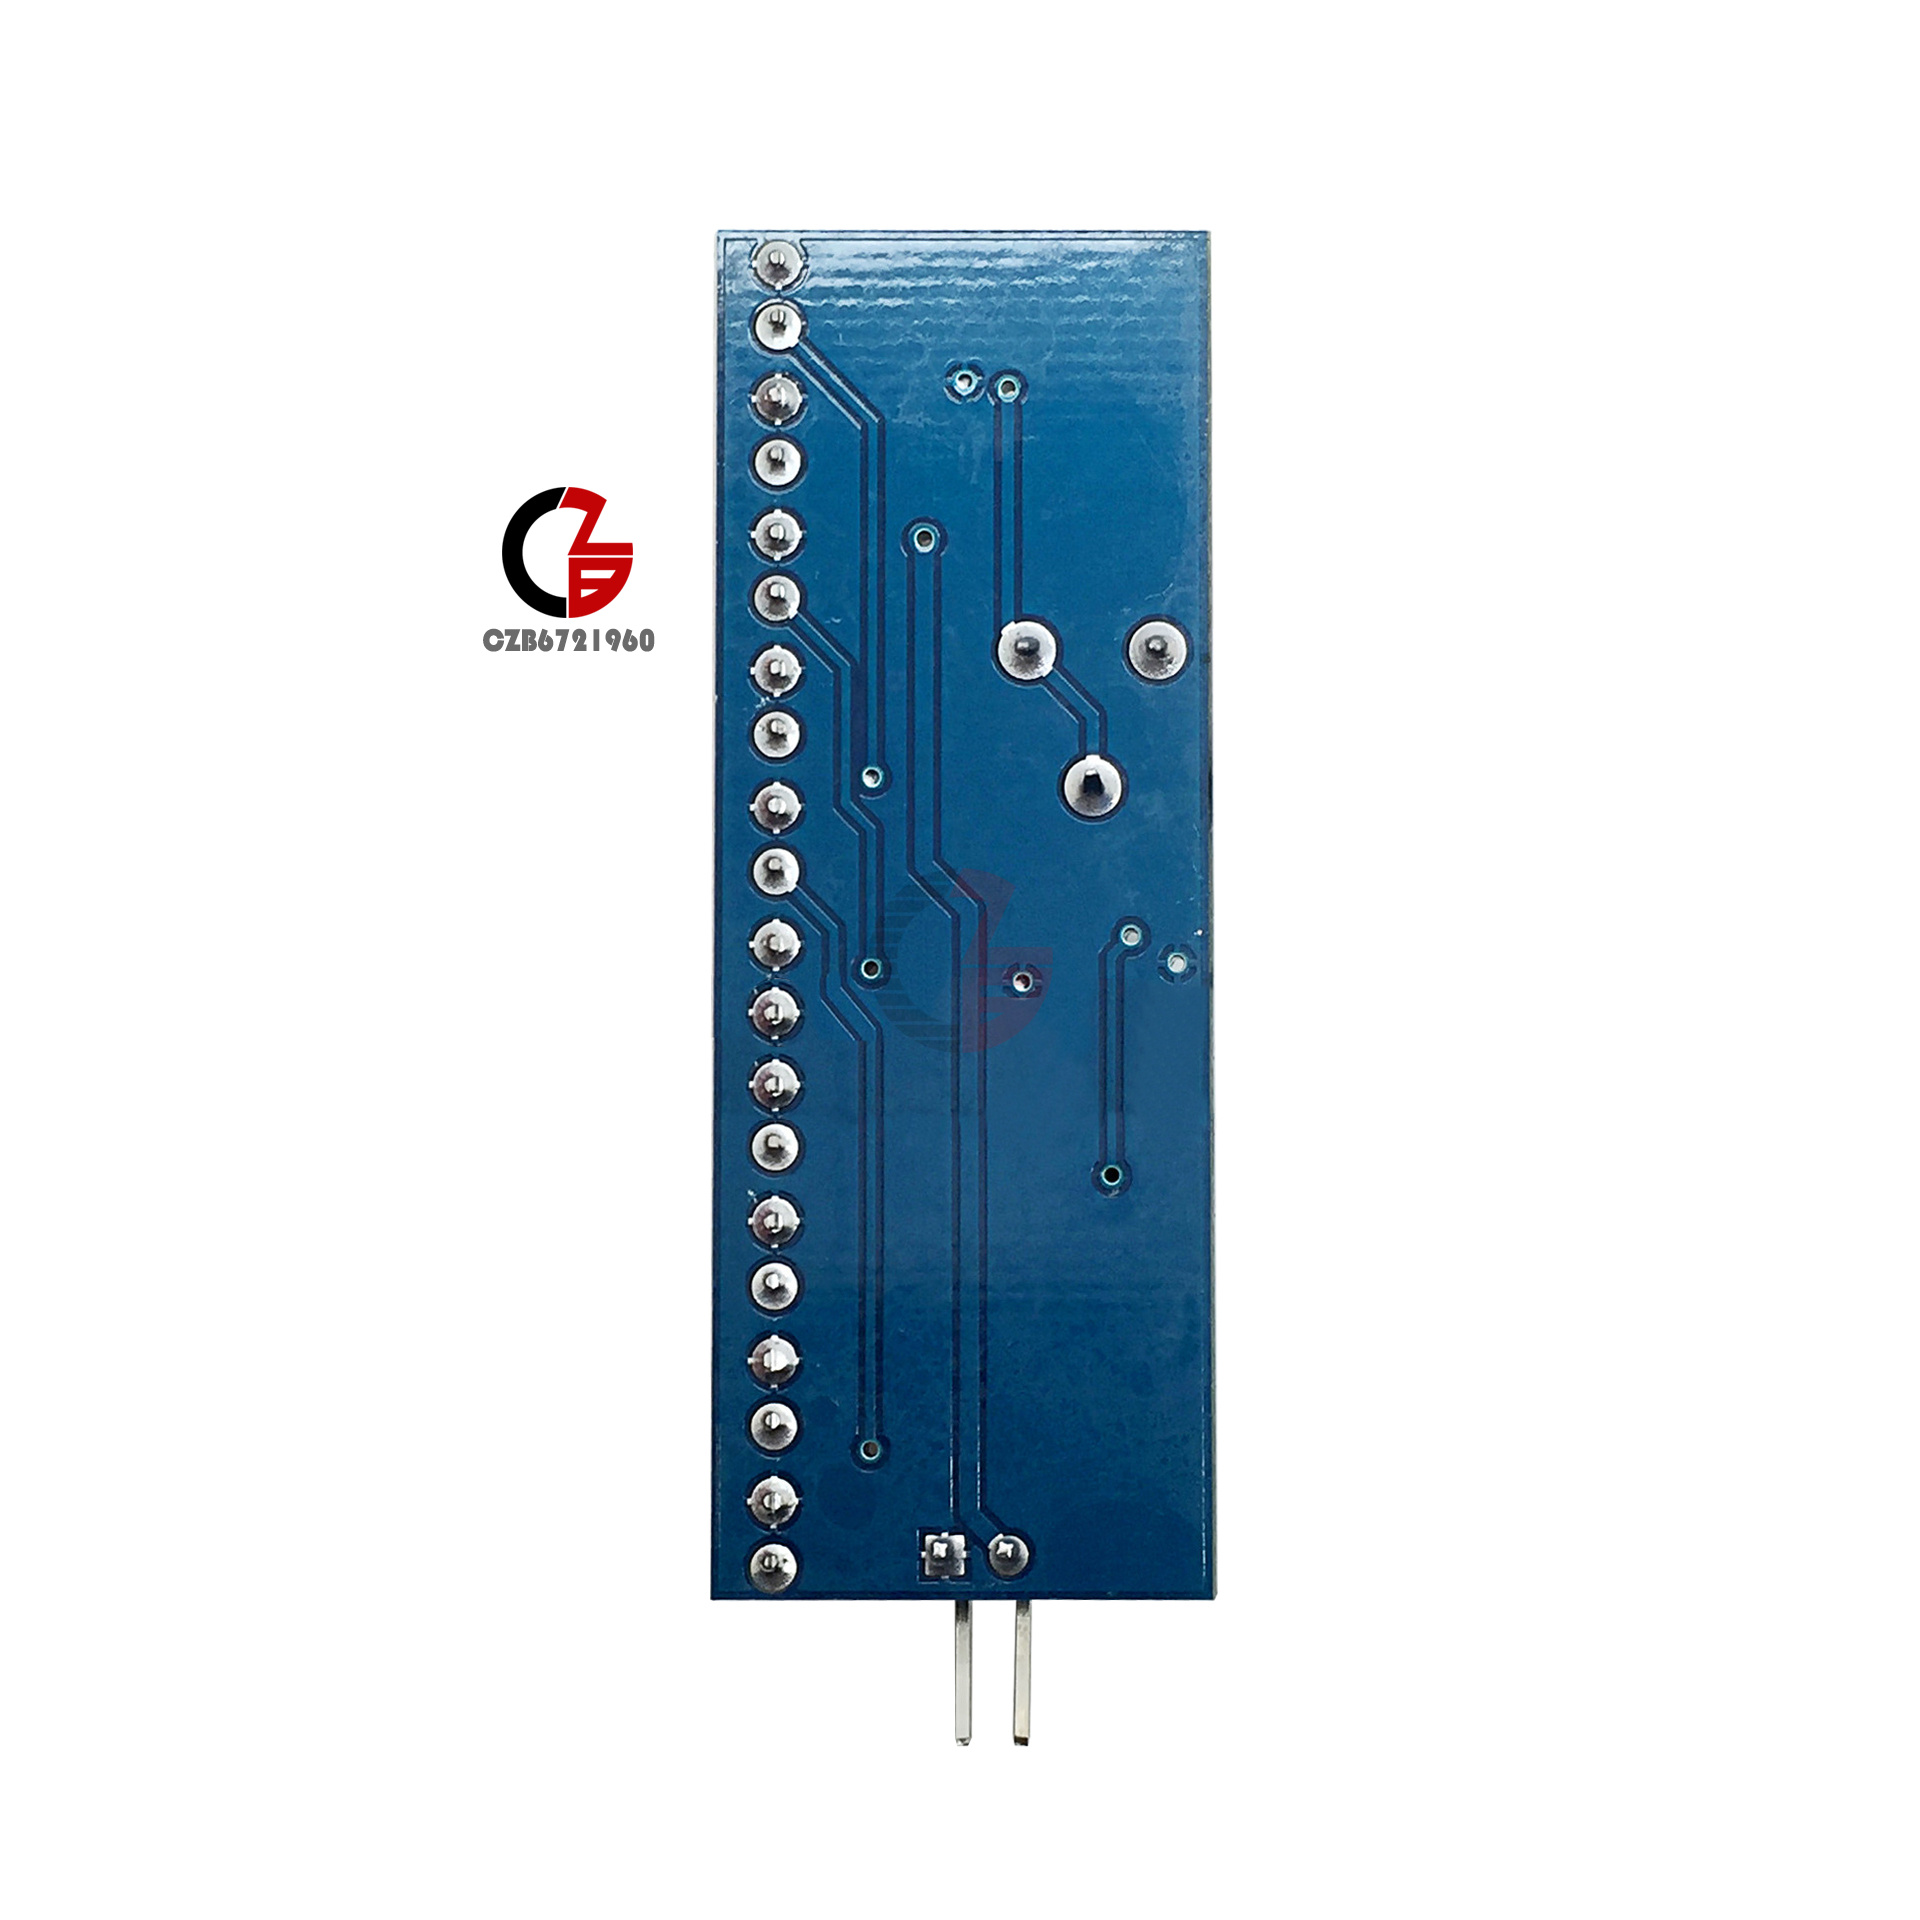 Led Chaser Flowing Water Light Ne555 Module Cd4017 Circuit Driver Diagram Using Ic 555 And Cd 4017 Cycle New